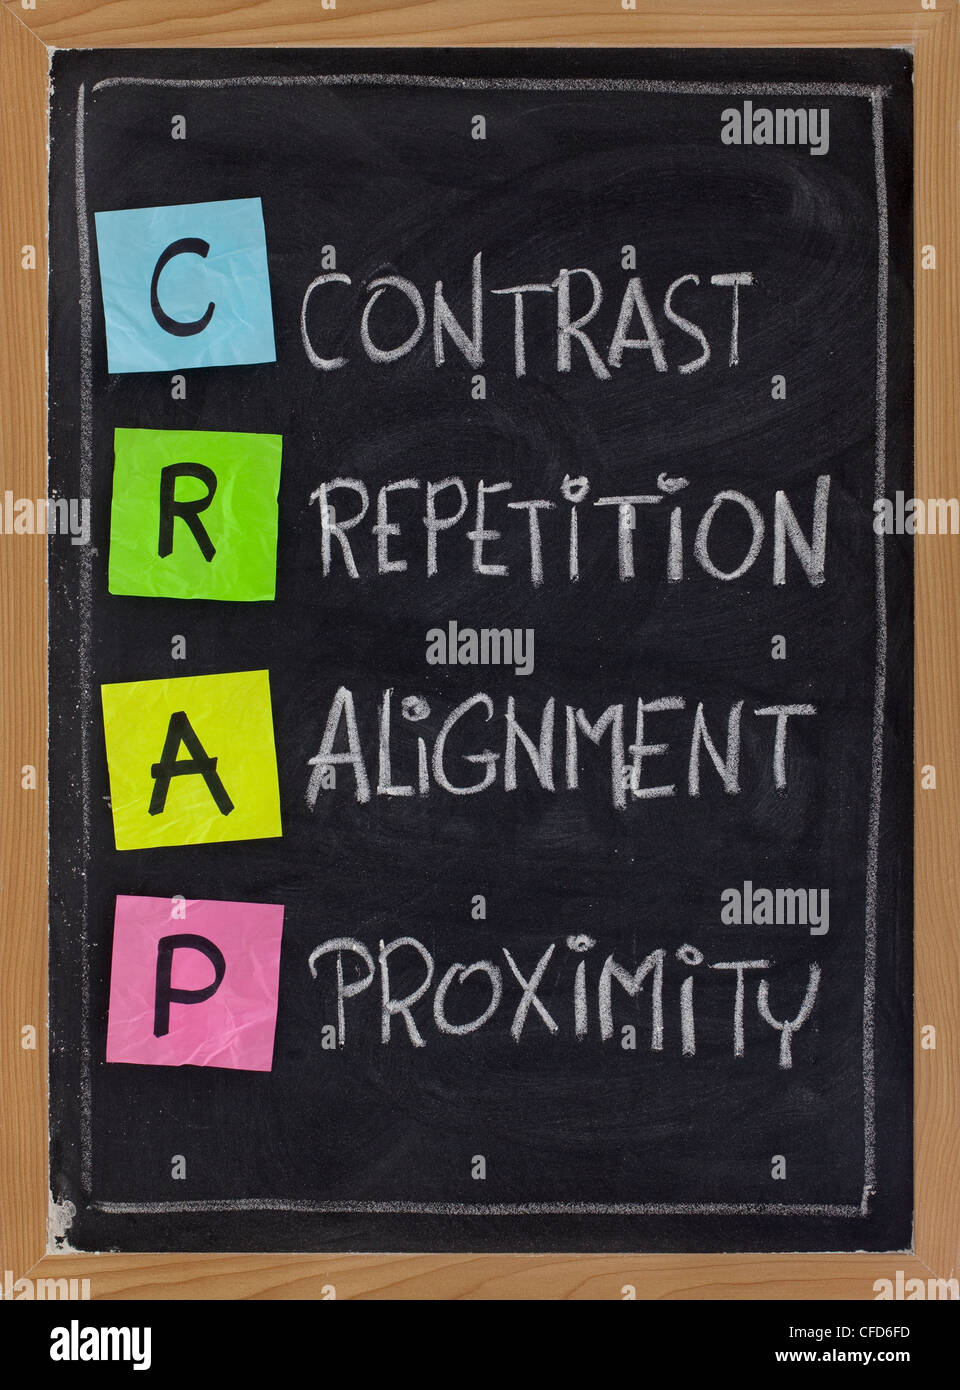 CRAP - contrast, repetition, alignment and proximity, the four principles of sound design - Stock Image